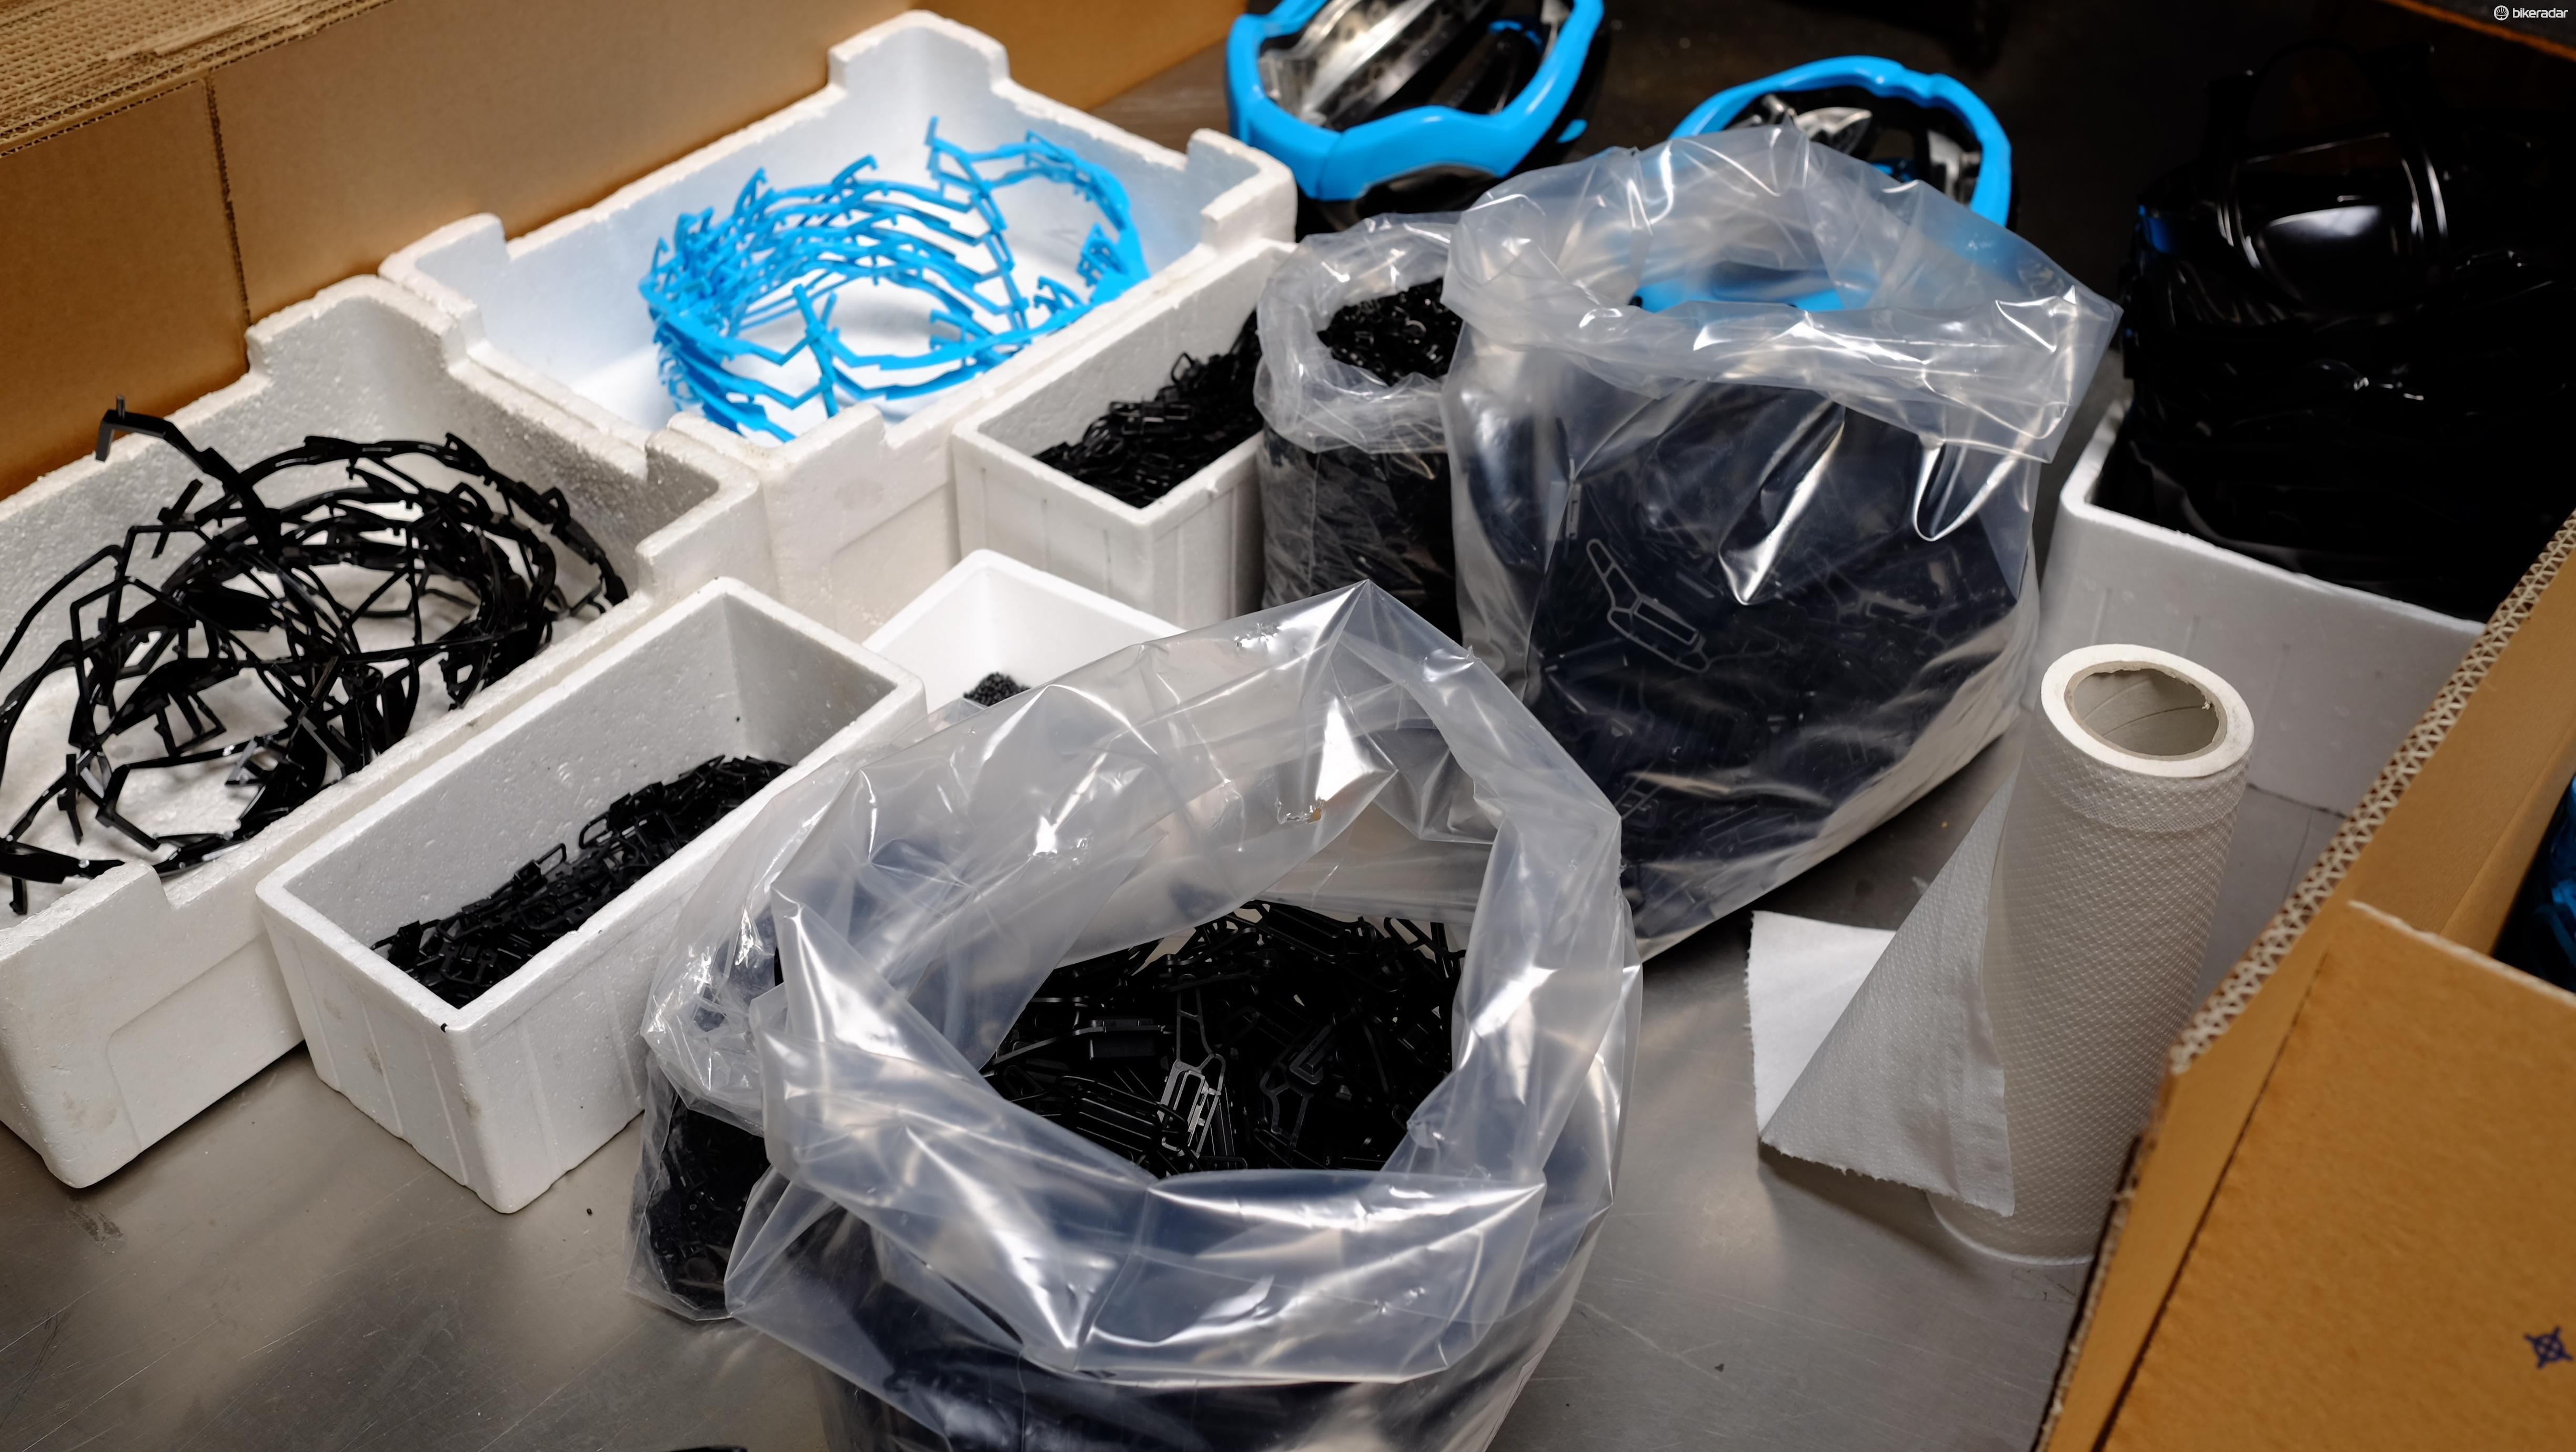 The components we saw earlier are then loaded into a machine alongside these additional plastic parts